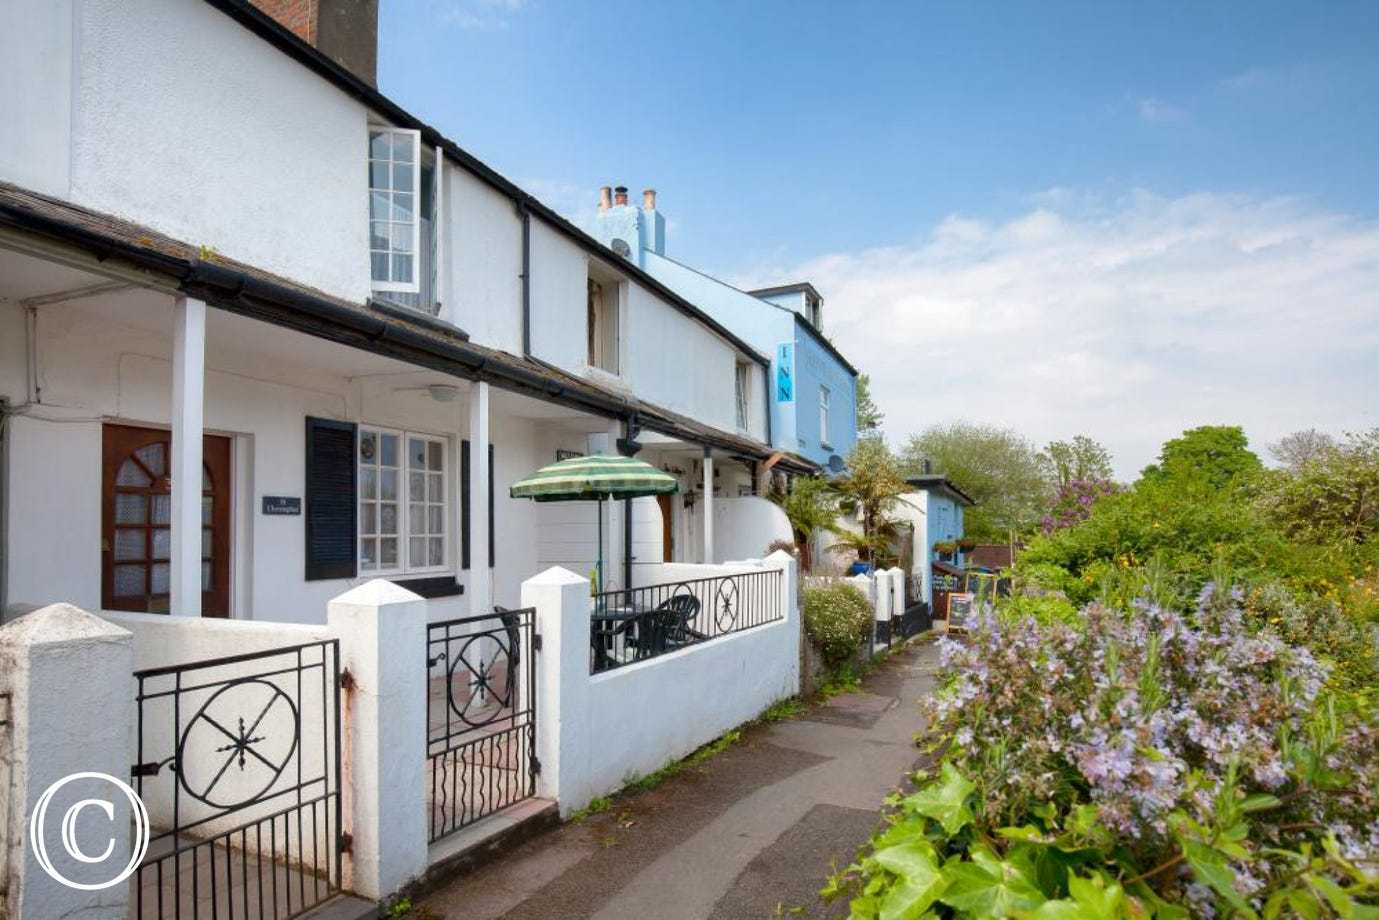 pretty self-catering cottage for families in Shaldon, opposite Teignmouth and with easy links to Torquay